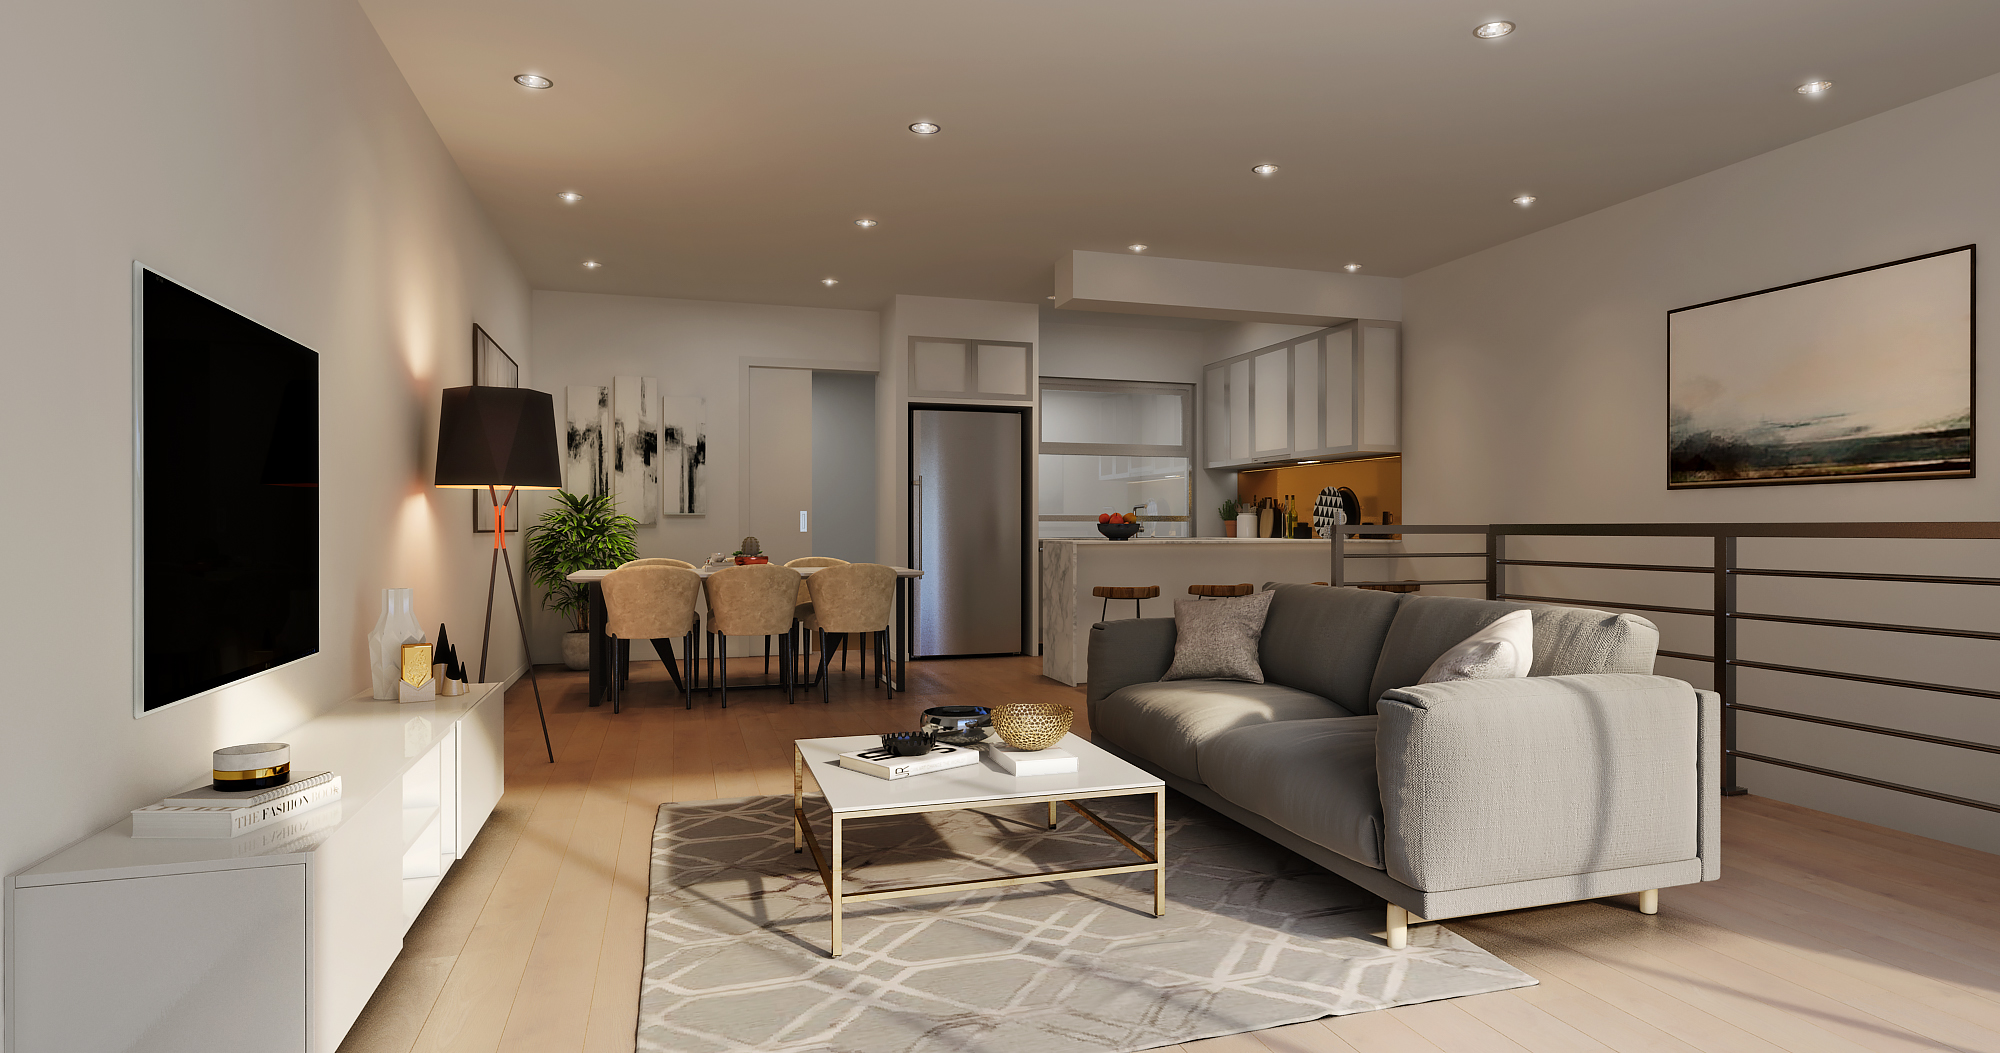 Magnificent 3 and 4 bedroom Prospect townhouses from $489,000